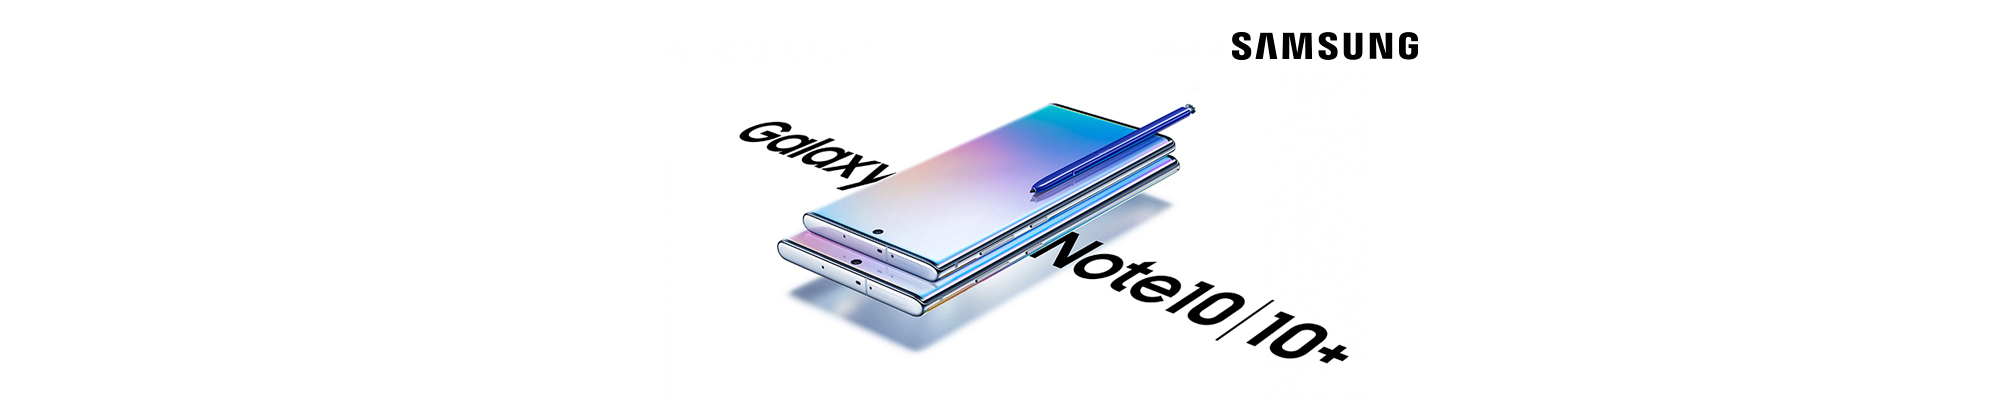 galaxy-note-10-header